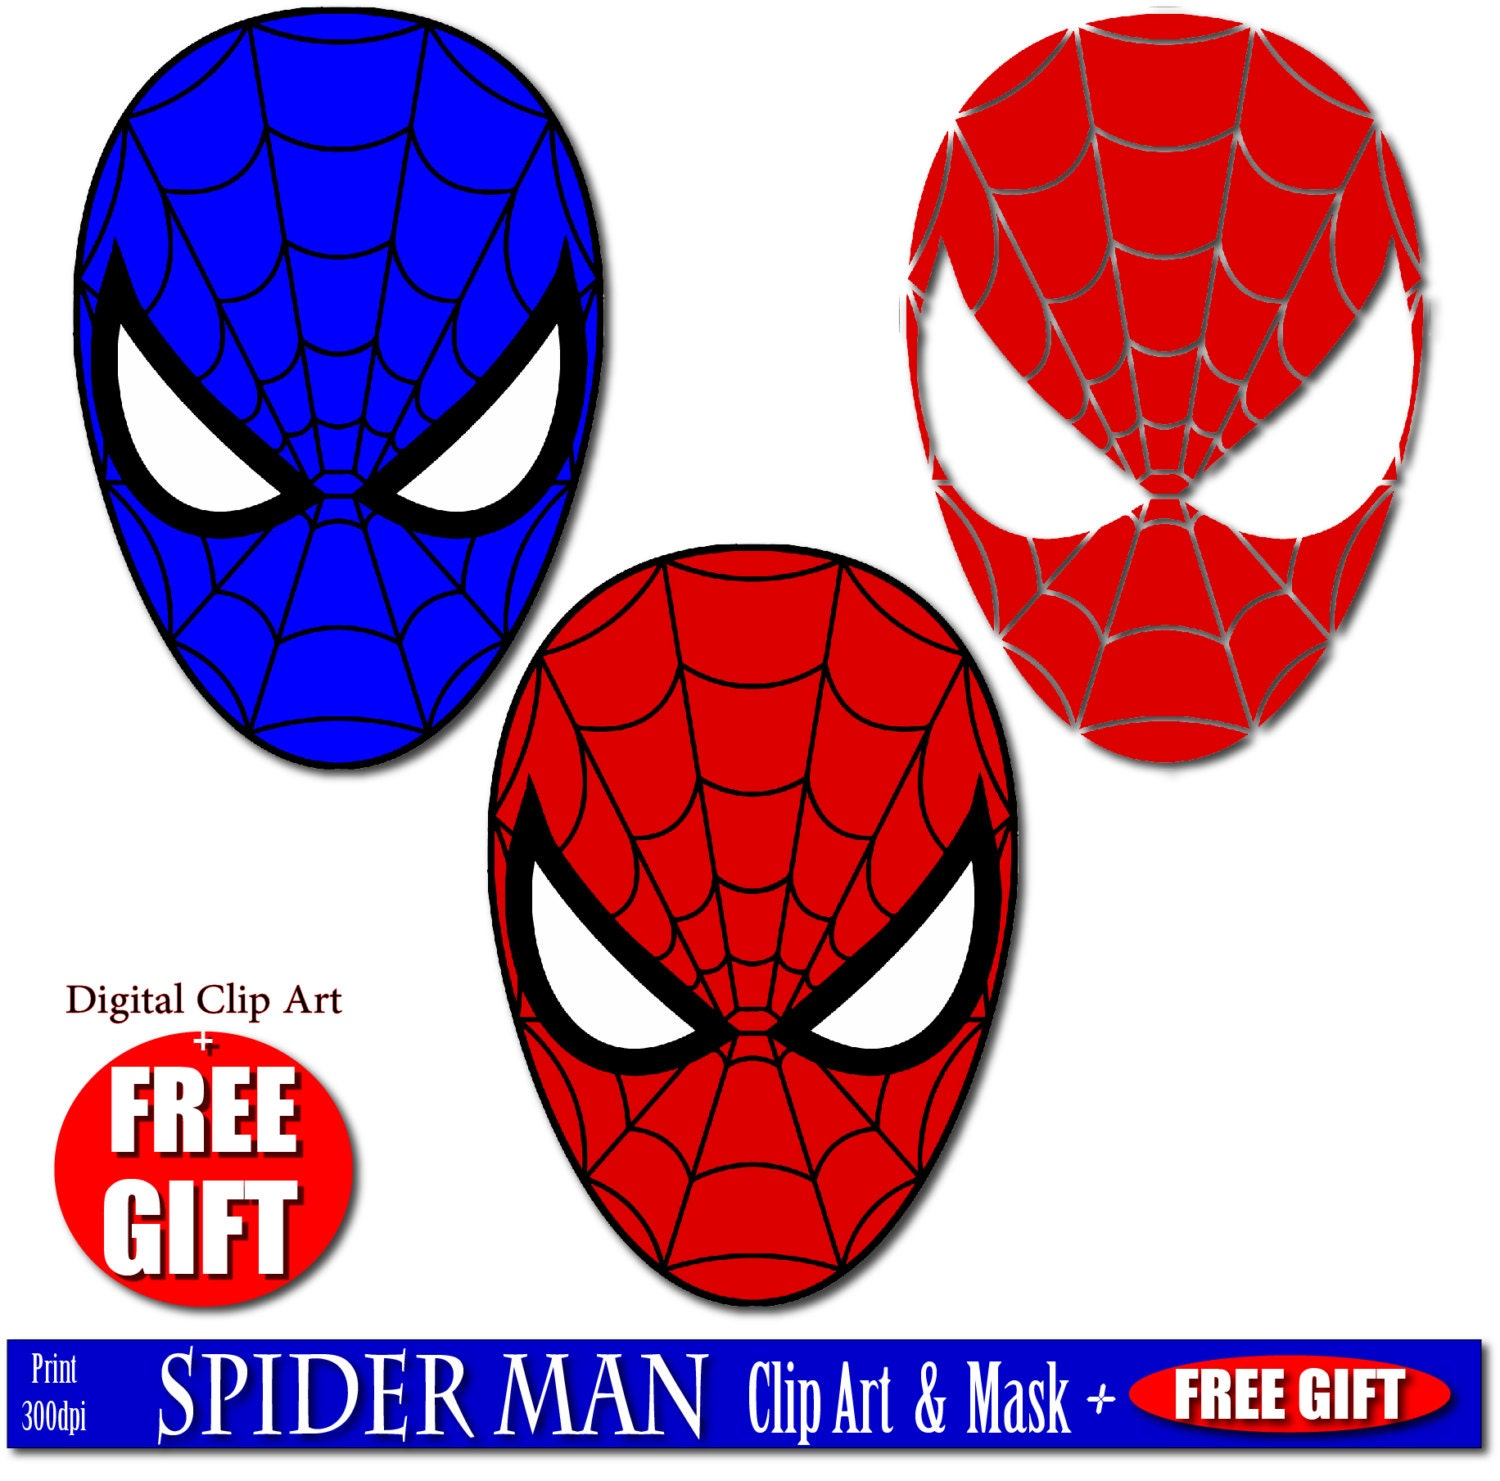 digital clip art spiderman mask superhero party masks clipart rh etsystudio com Iron Man Face Clip Art Hulk Clip Art Face